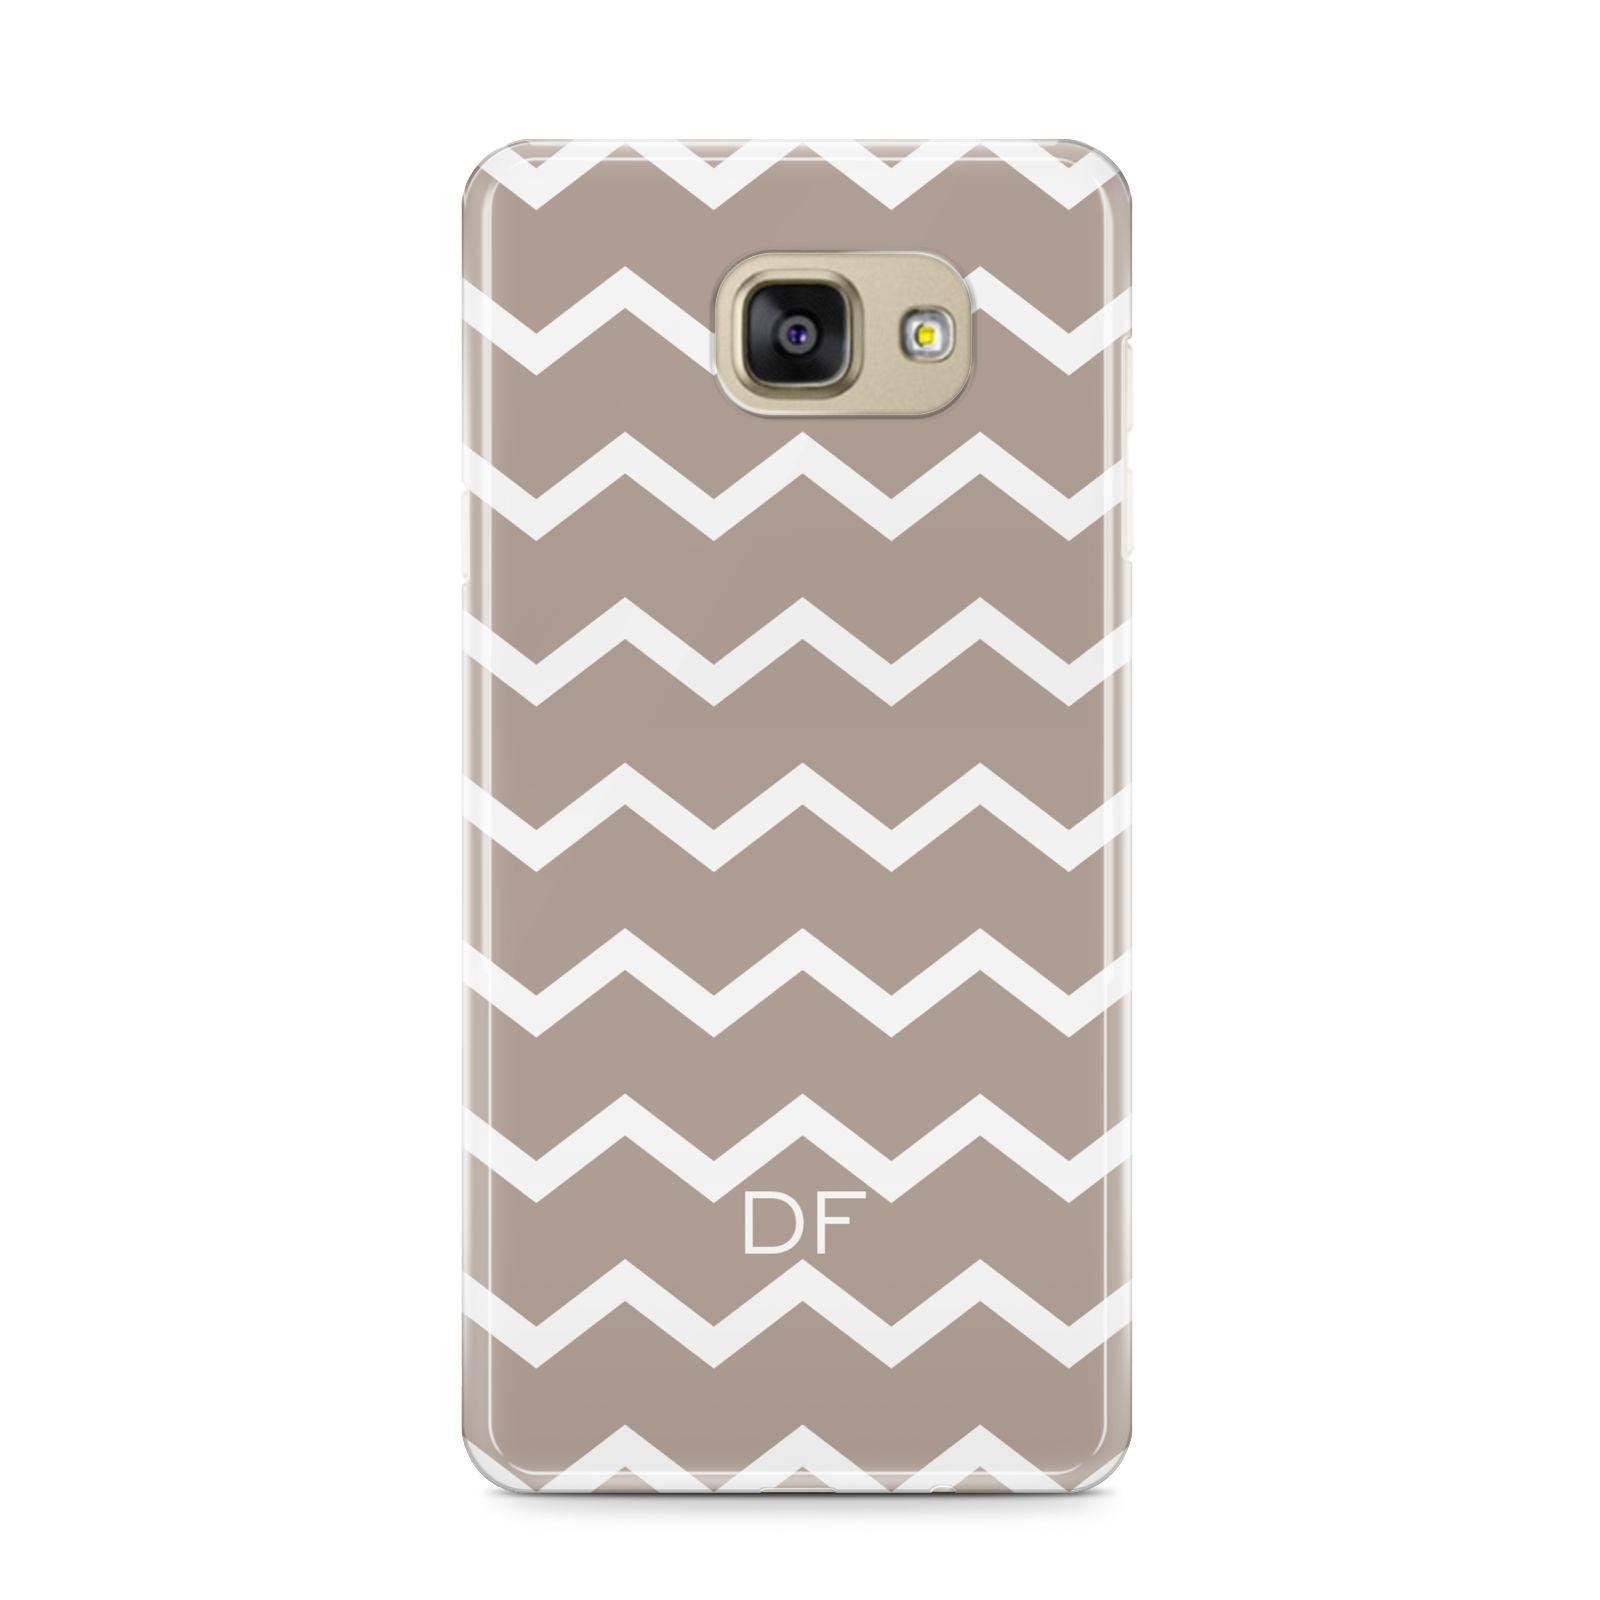 Personalised Chevron Beige Samsung Galaxy A9 2016 Case on gold phone